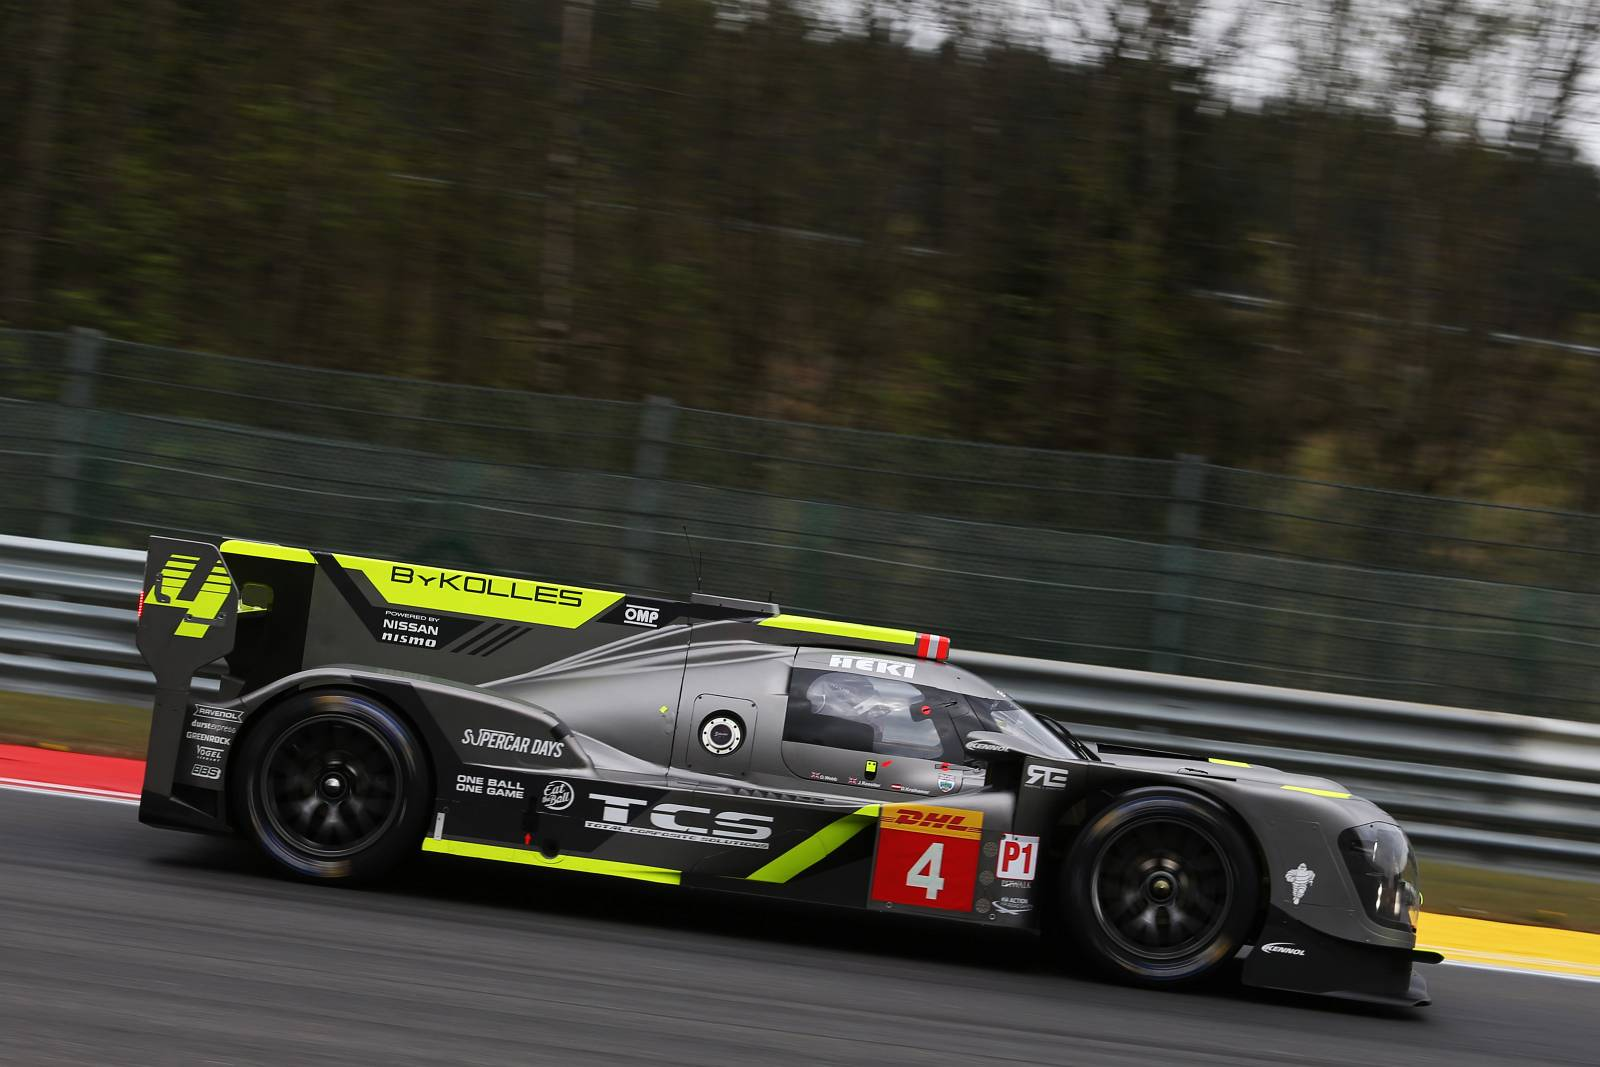 byKOLLES-racing-WEC-SPA-2017-40